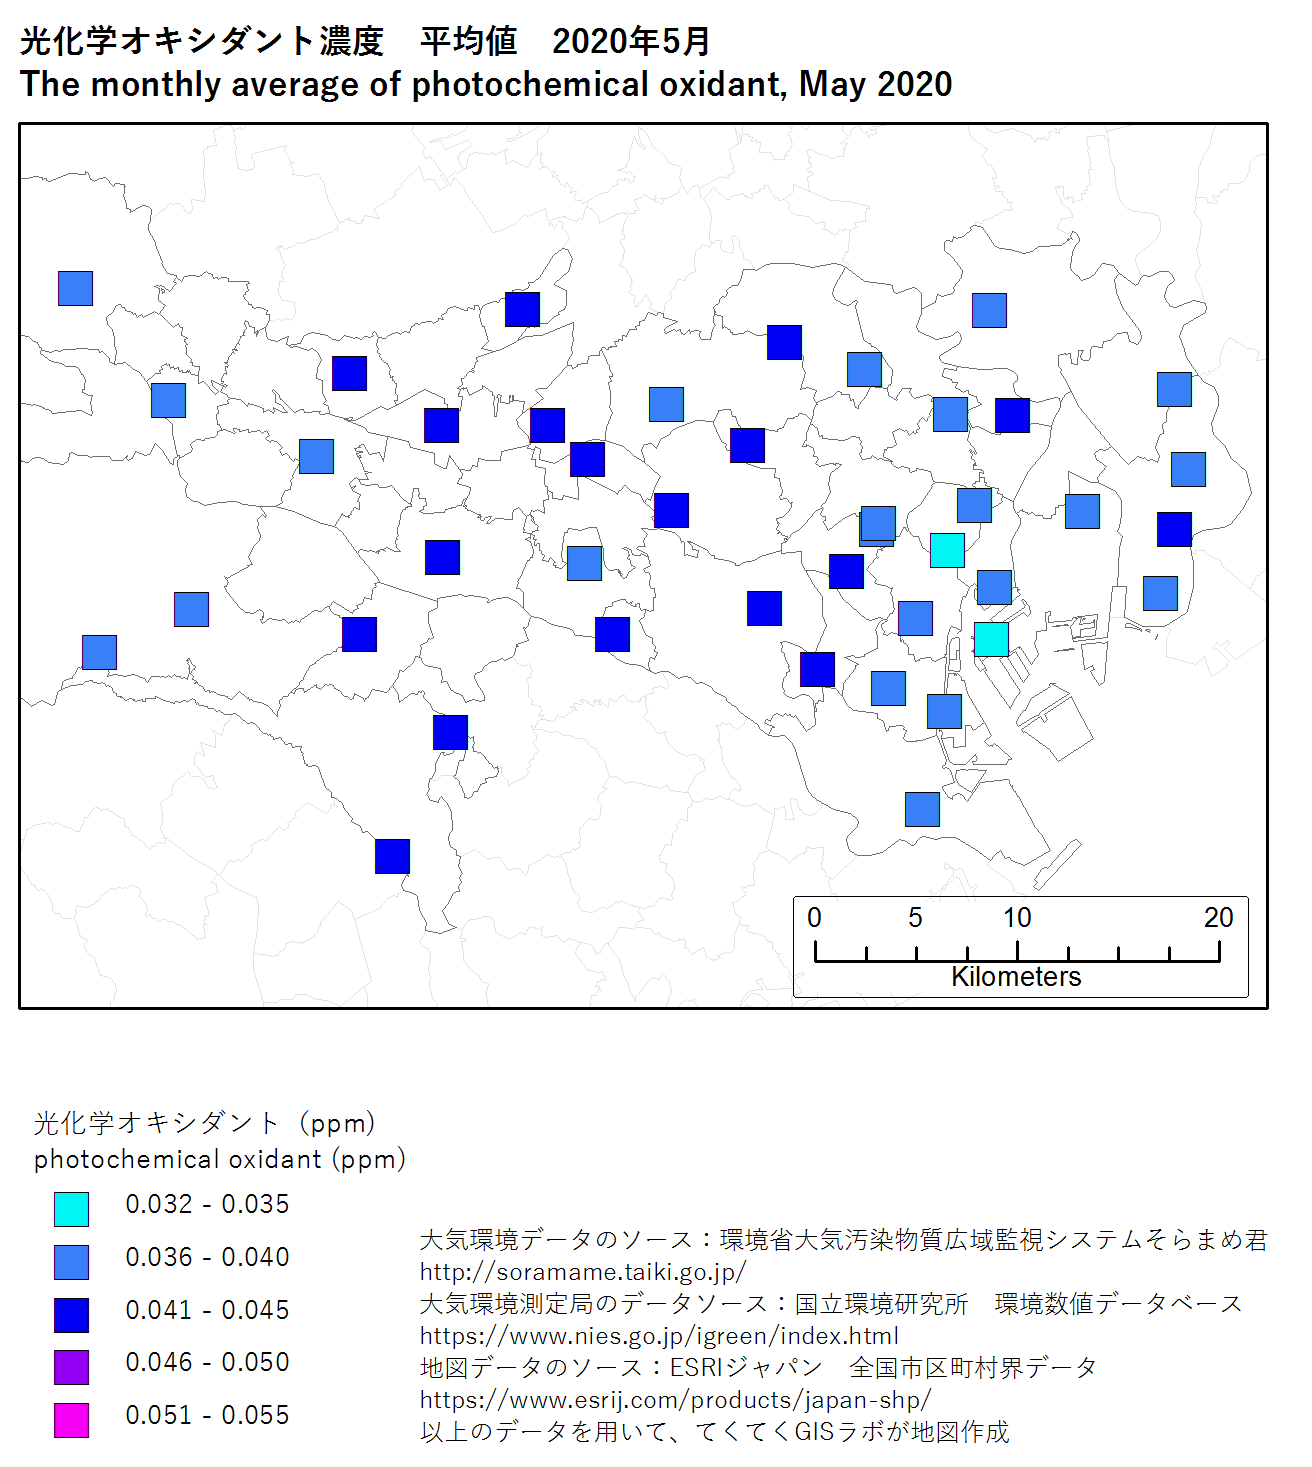 photochromic oxidant map (average) of Tokyo, May 2020